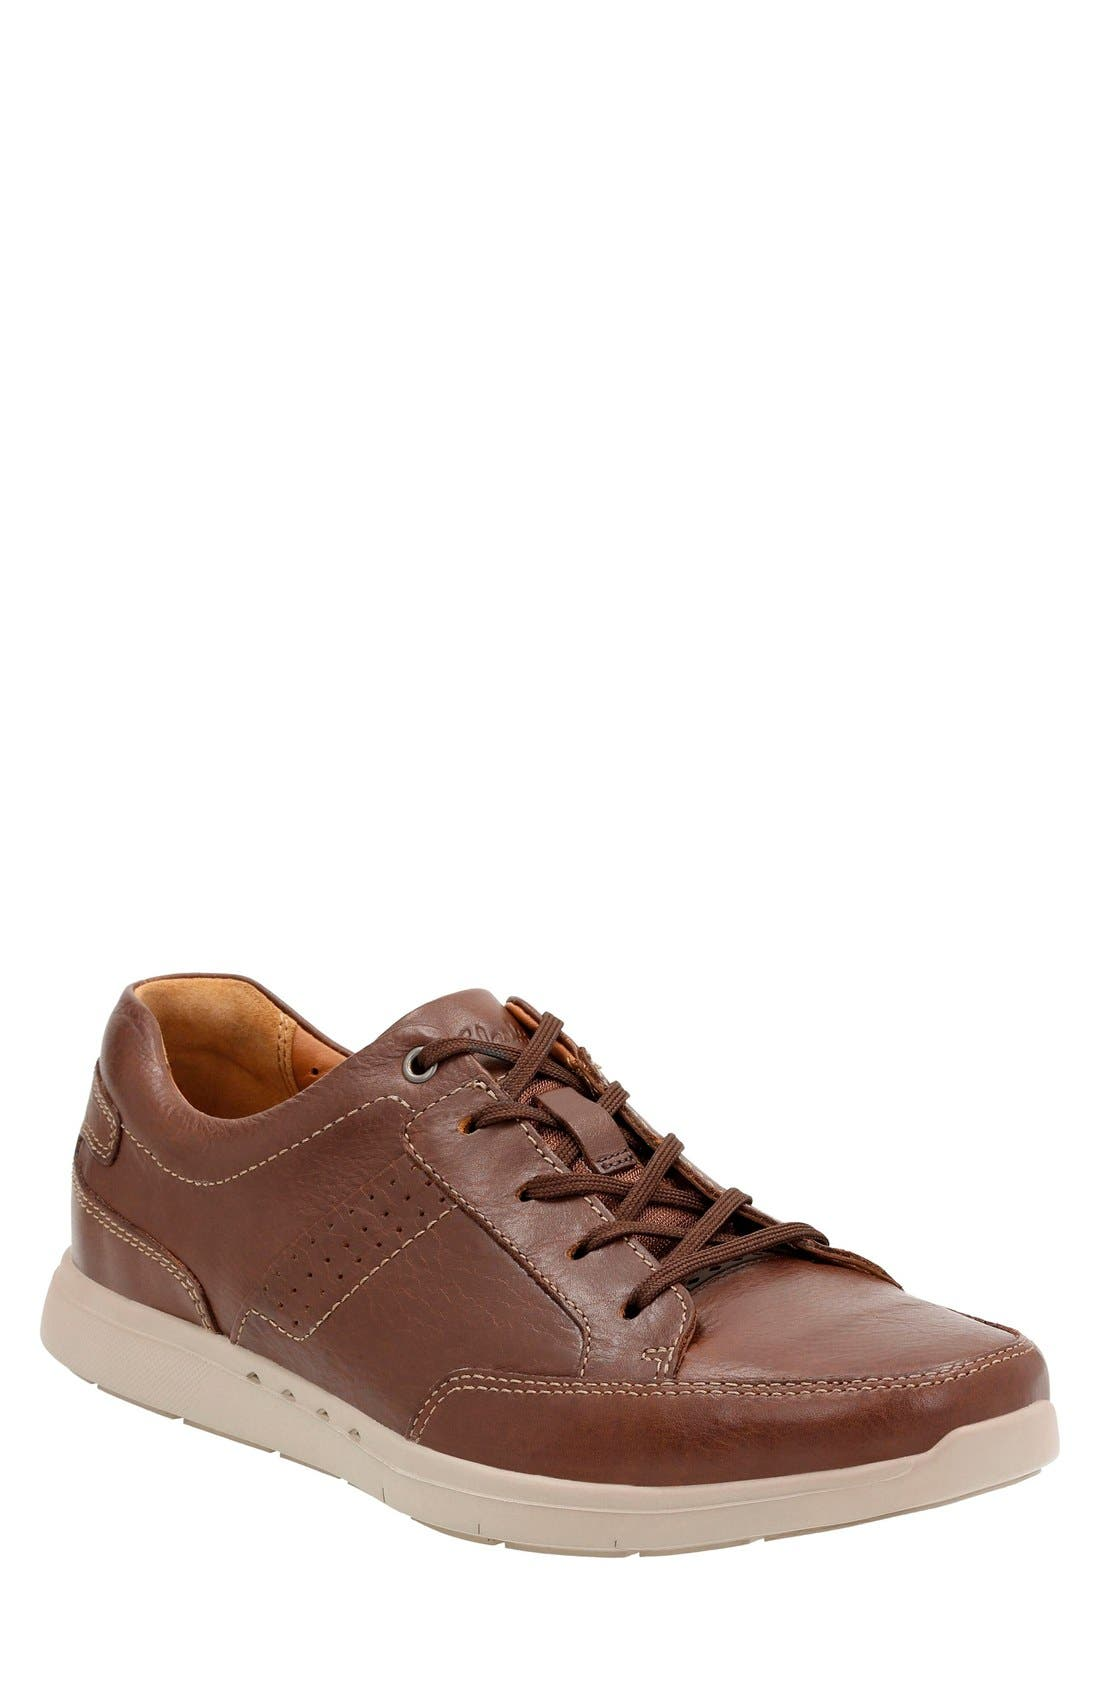 Alternate Image 1 Selected - Clarks® 'Unstructured - Lomac' Leather Sneaker (Men)